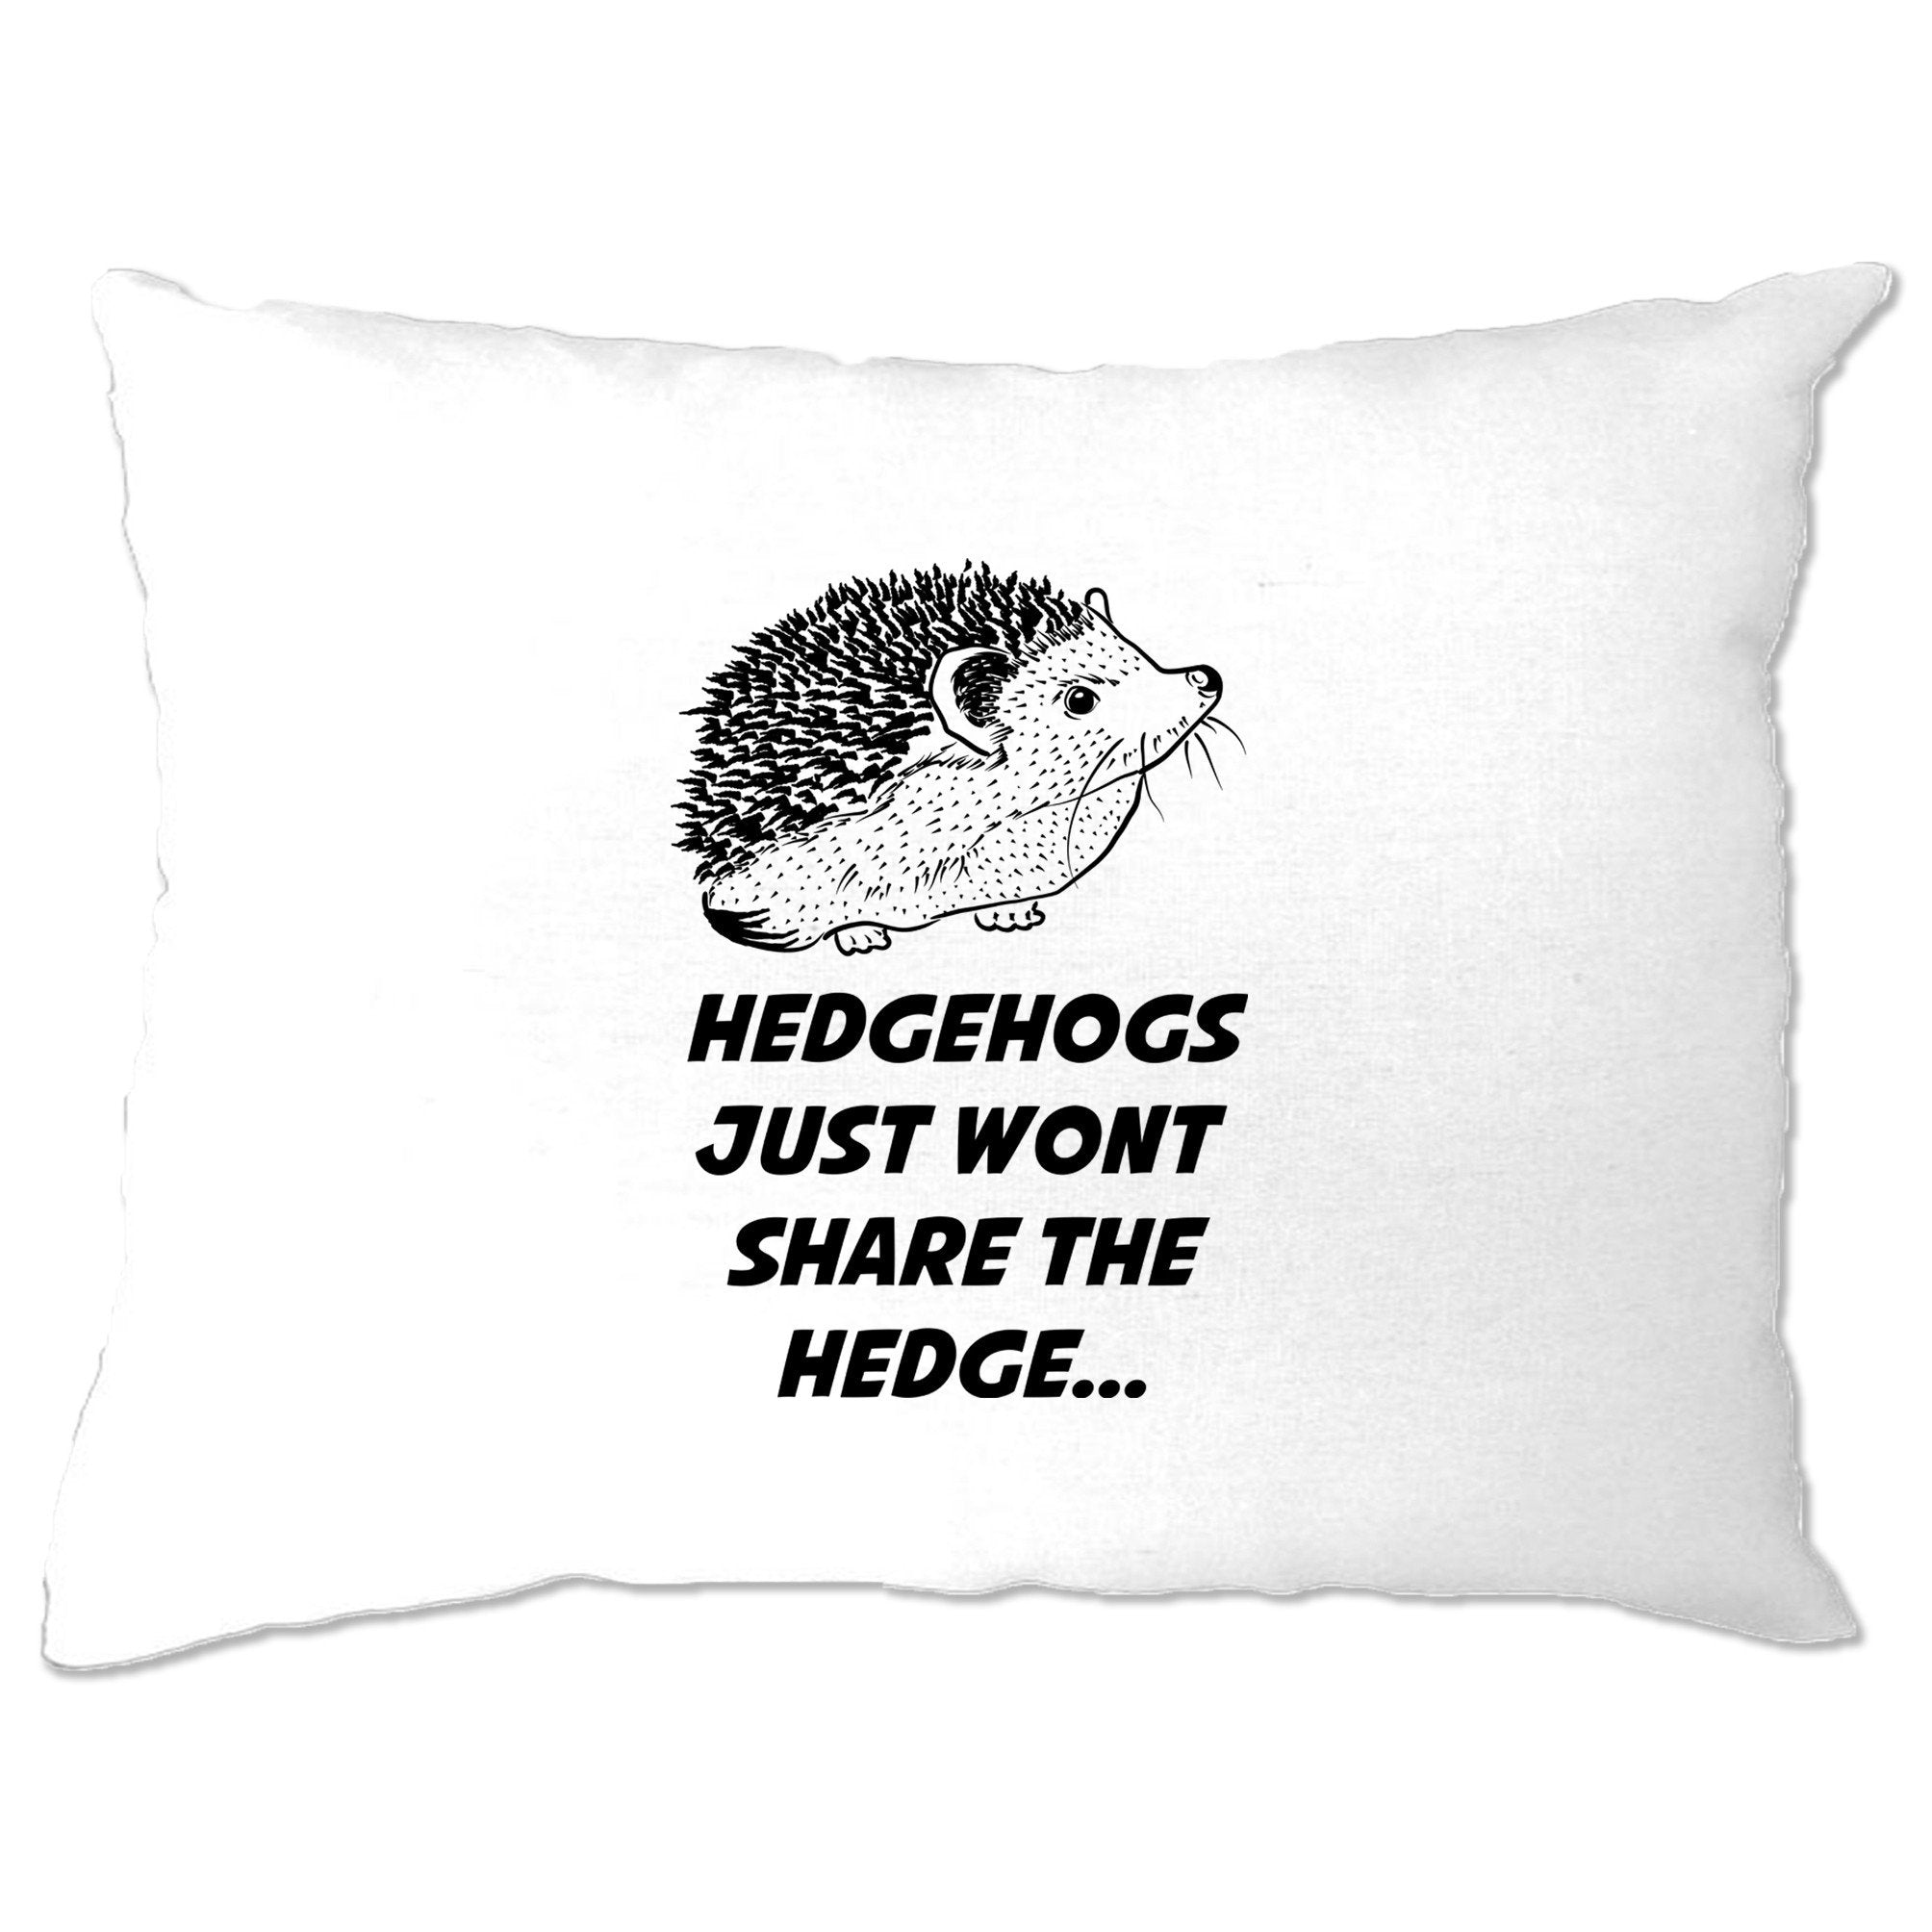 Joke Pun Pillow Case Hedgehogs Just Won't Share The Hedge